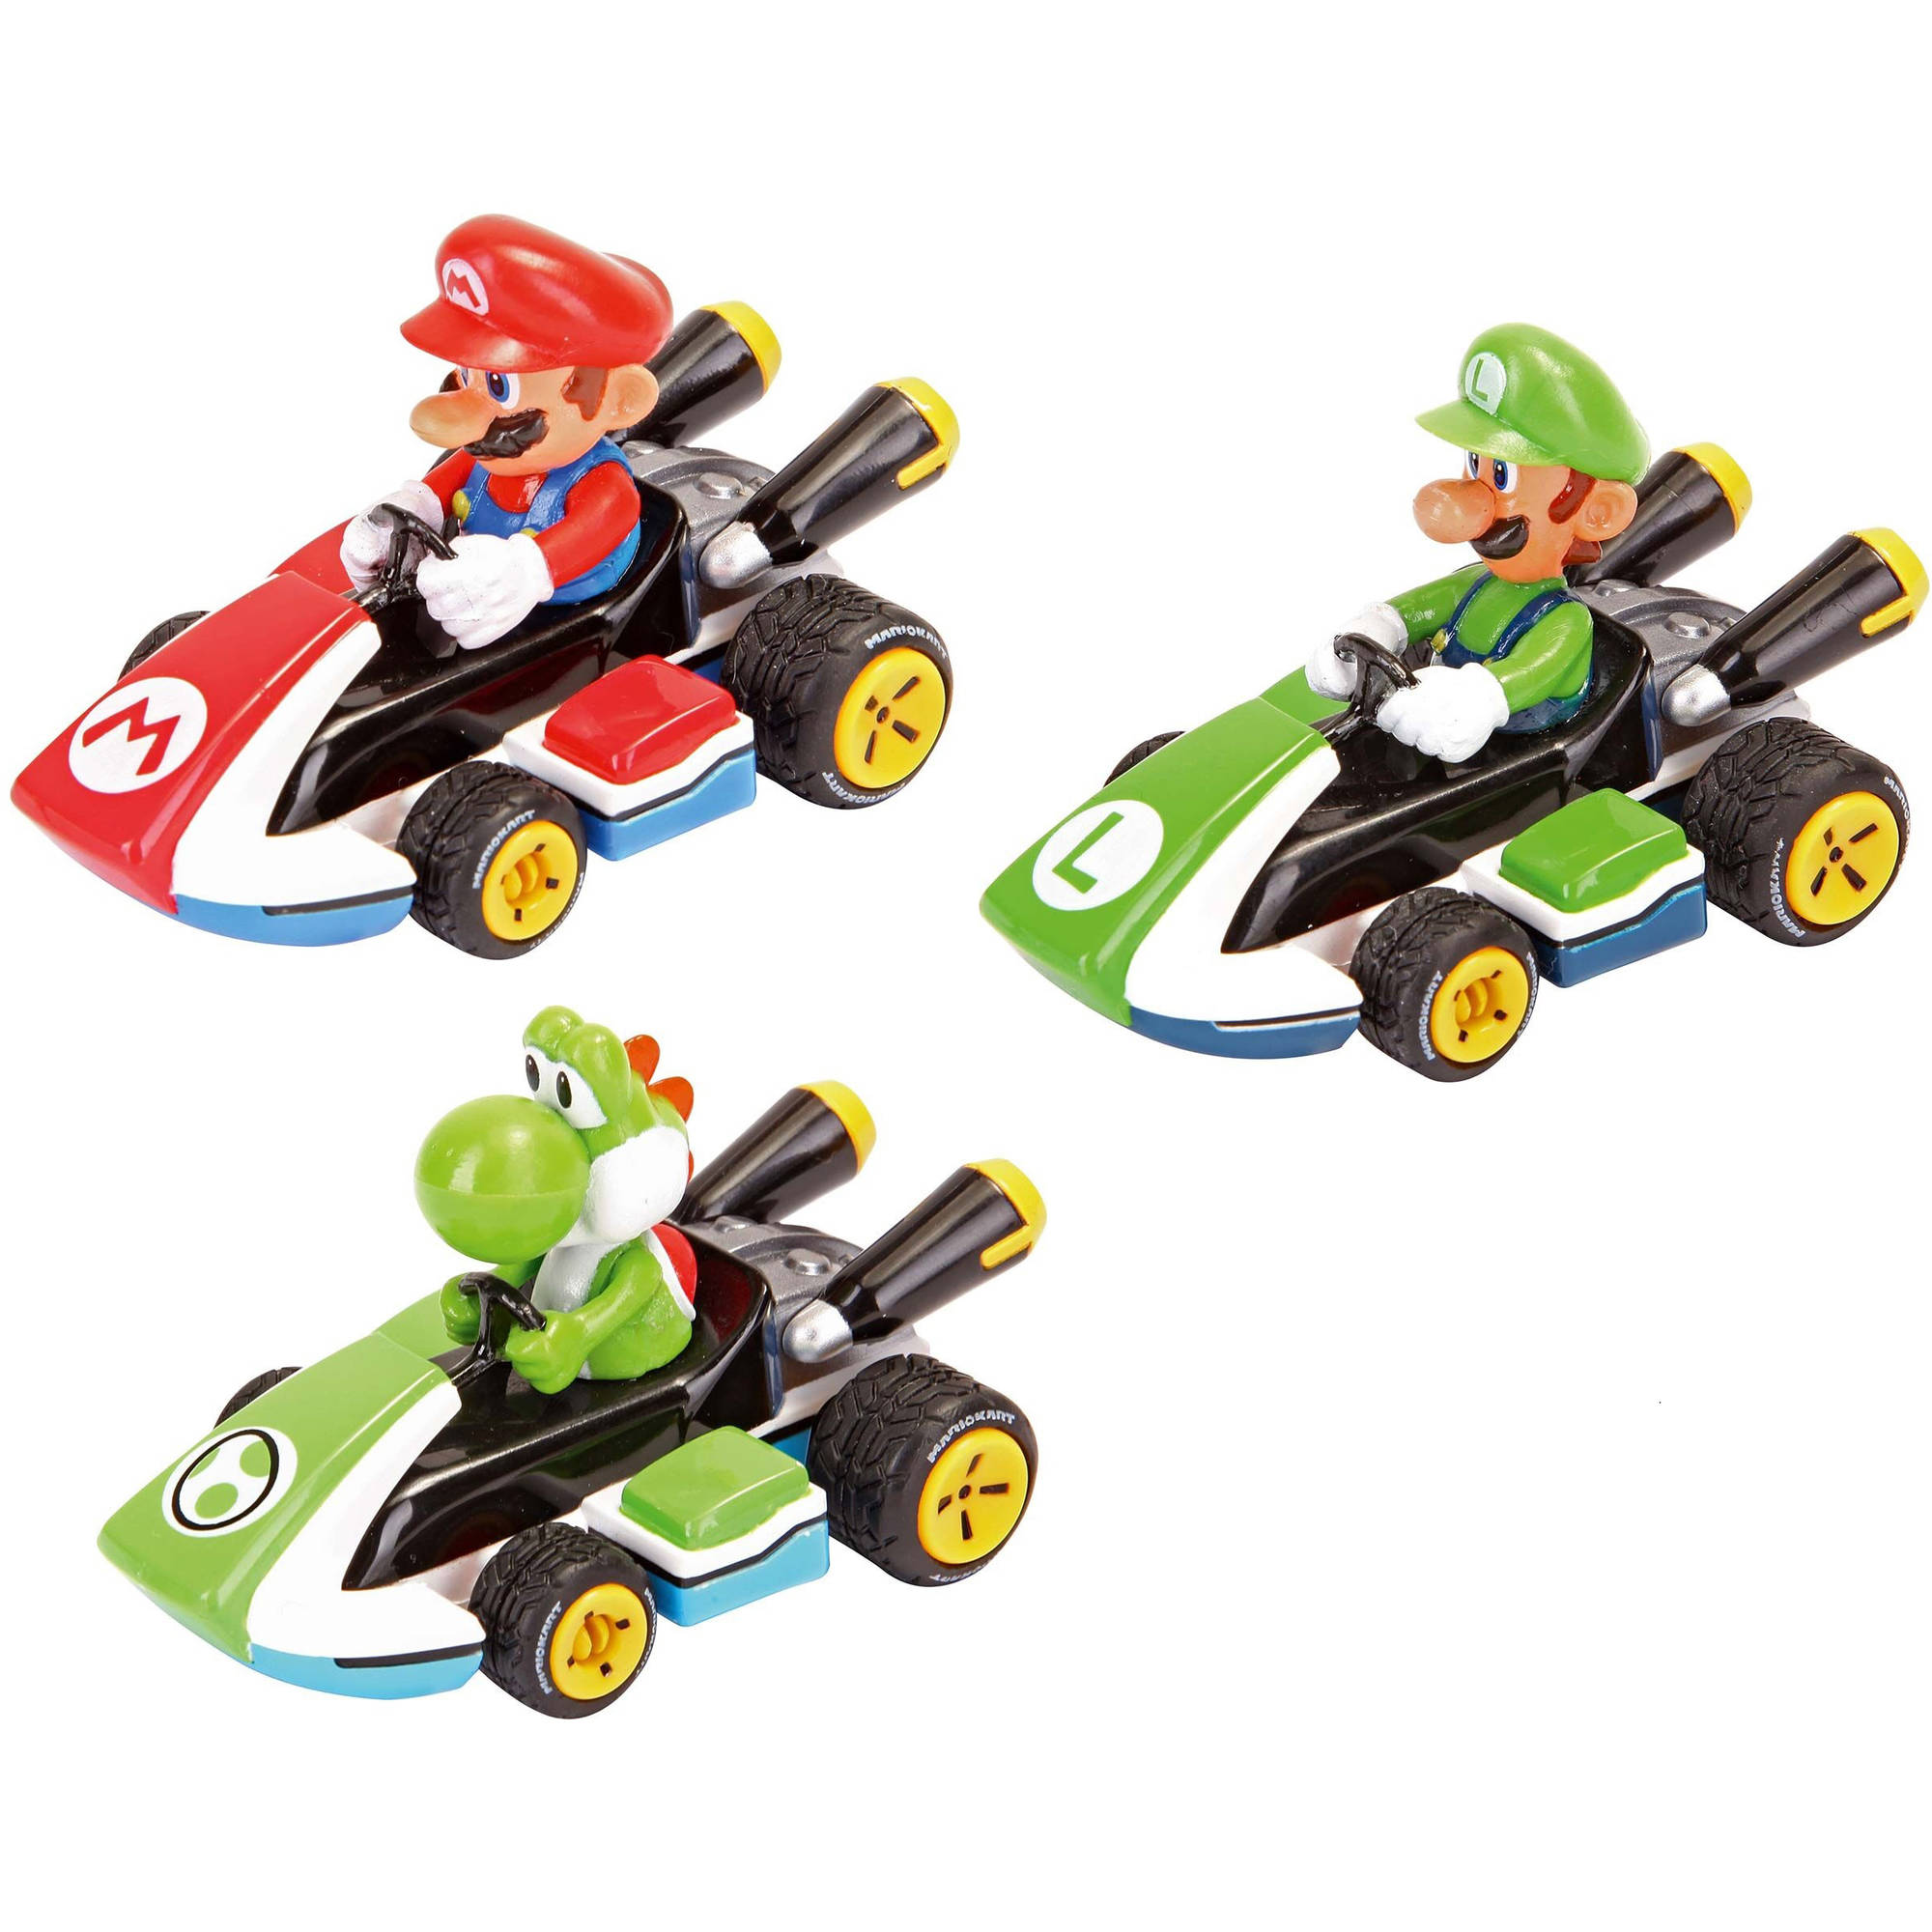 Carrera Pull and Speed Mario Kart 8 3-Pack Racers, Mario, Luigi and Yoshi